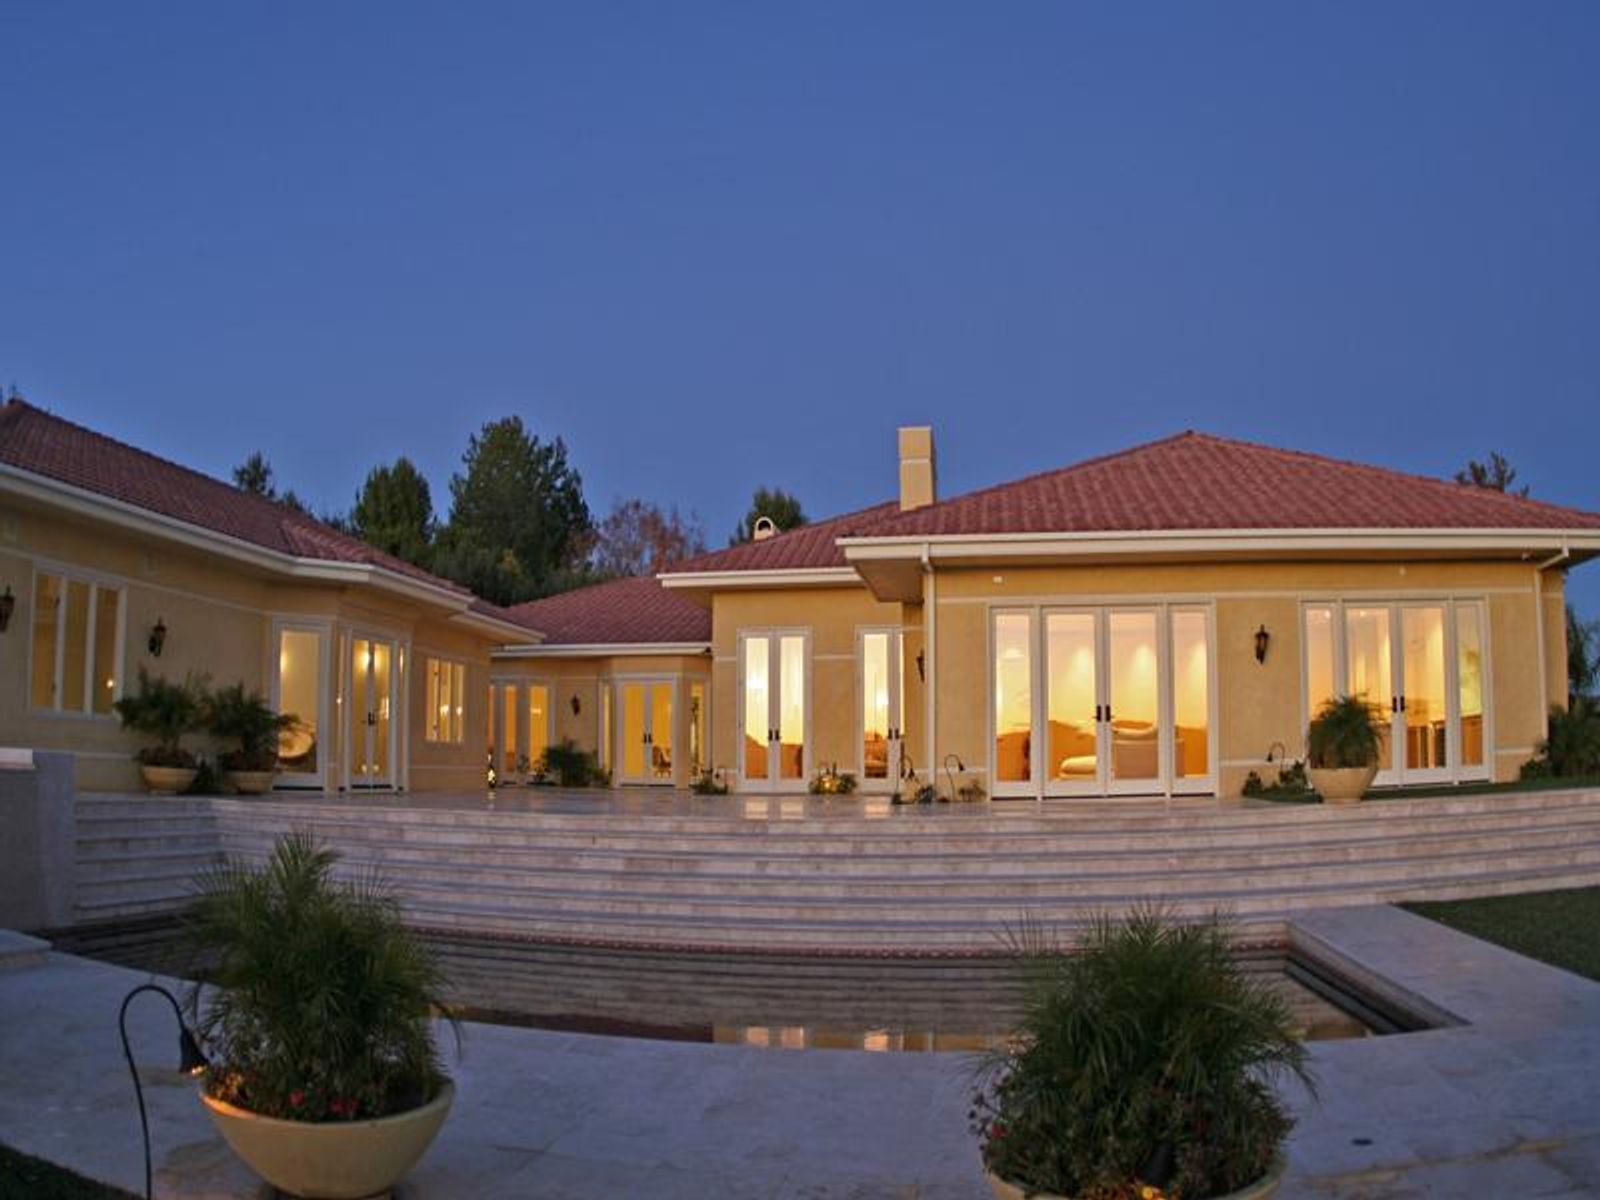 European Estate with Modern Flair, Westlake Village CA Single Family Home - Los Angeles Real Estate